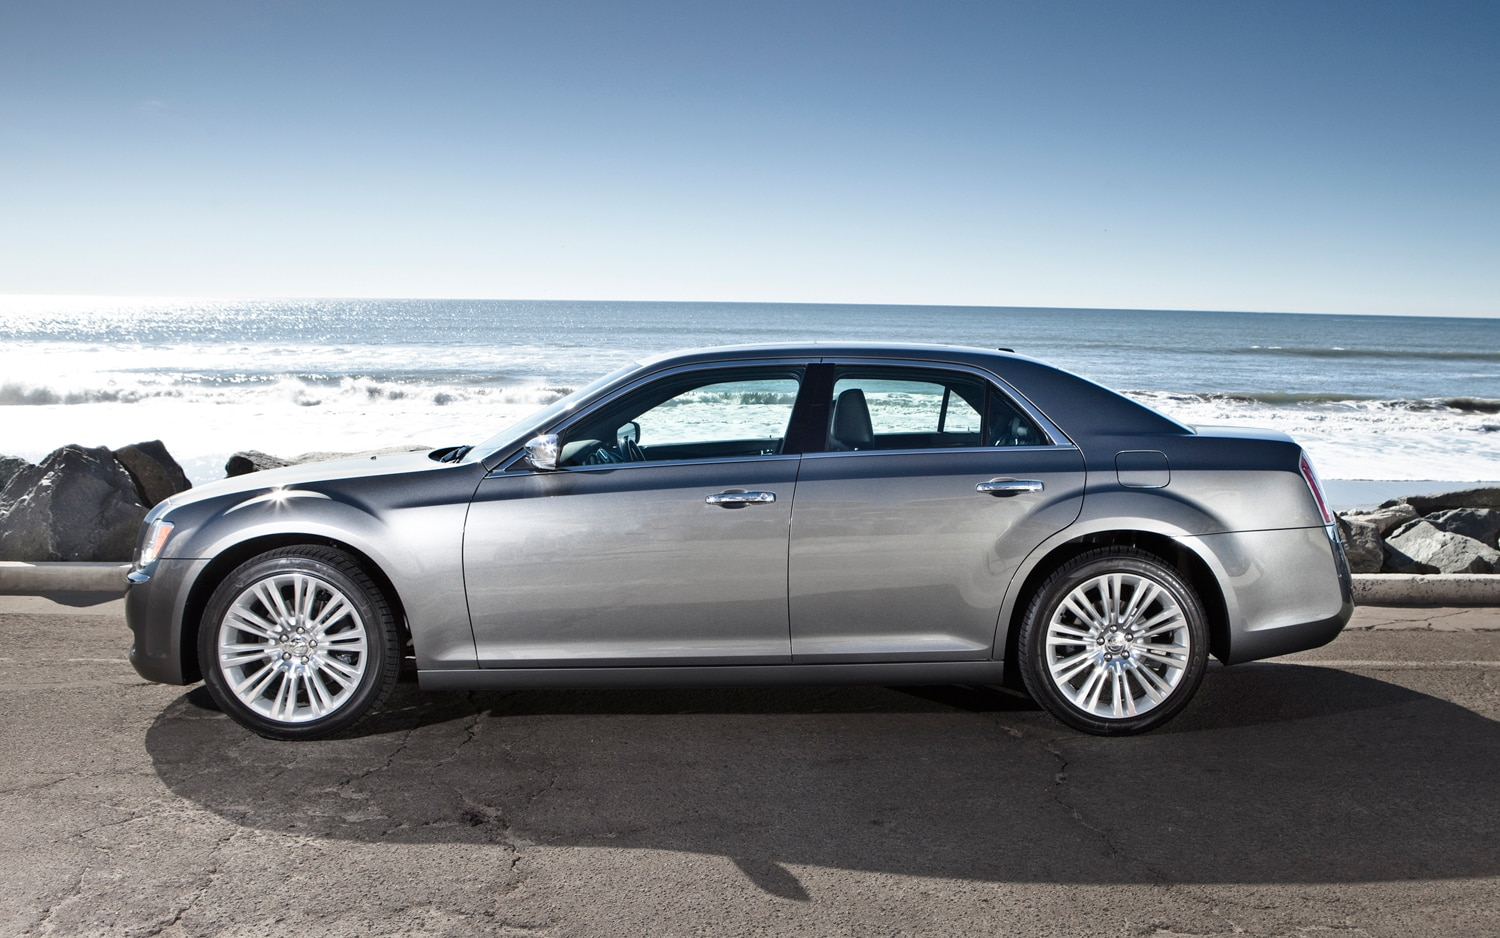 Alfa Romeo May Build Chrysler 300 Based Luxury Sedan